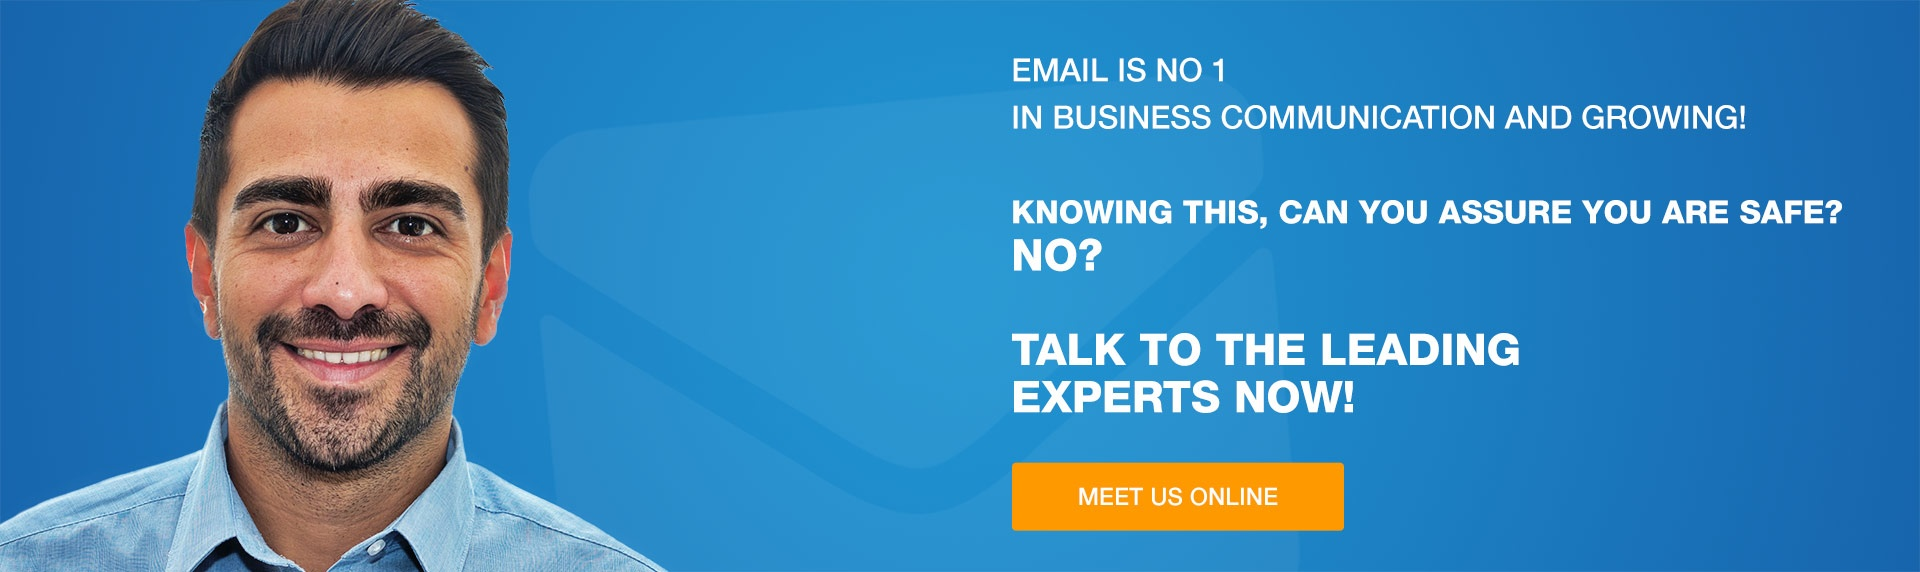 Talk to the leading experts